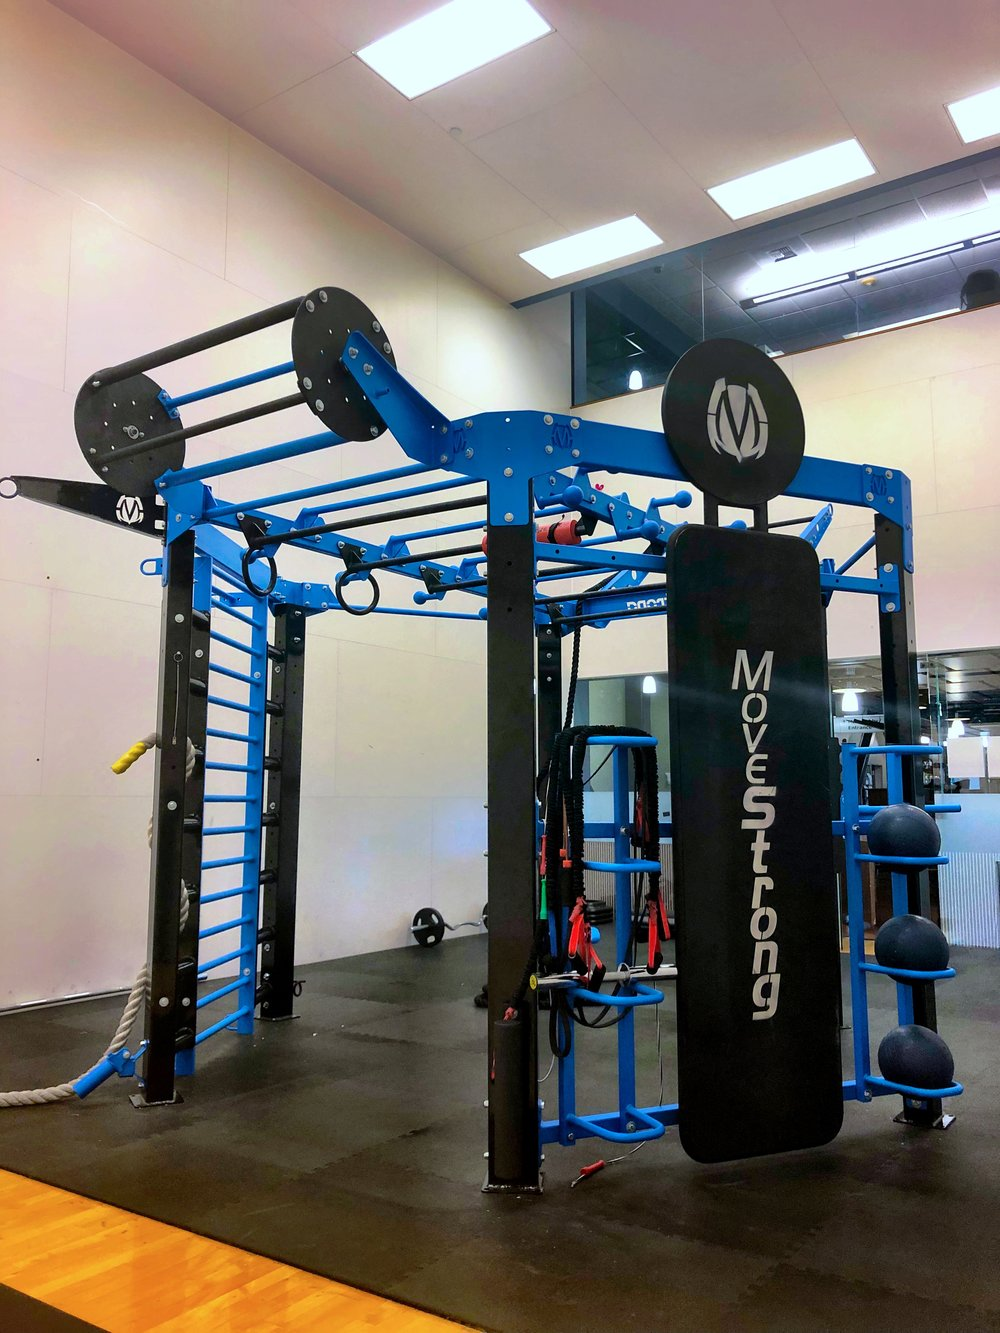 The Revolver Pull-up bar